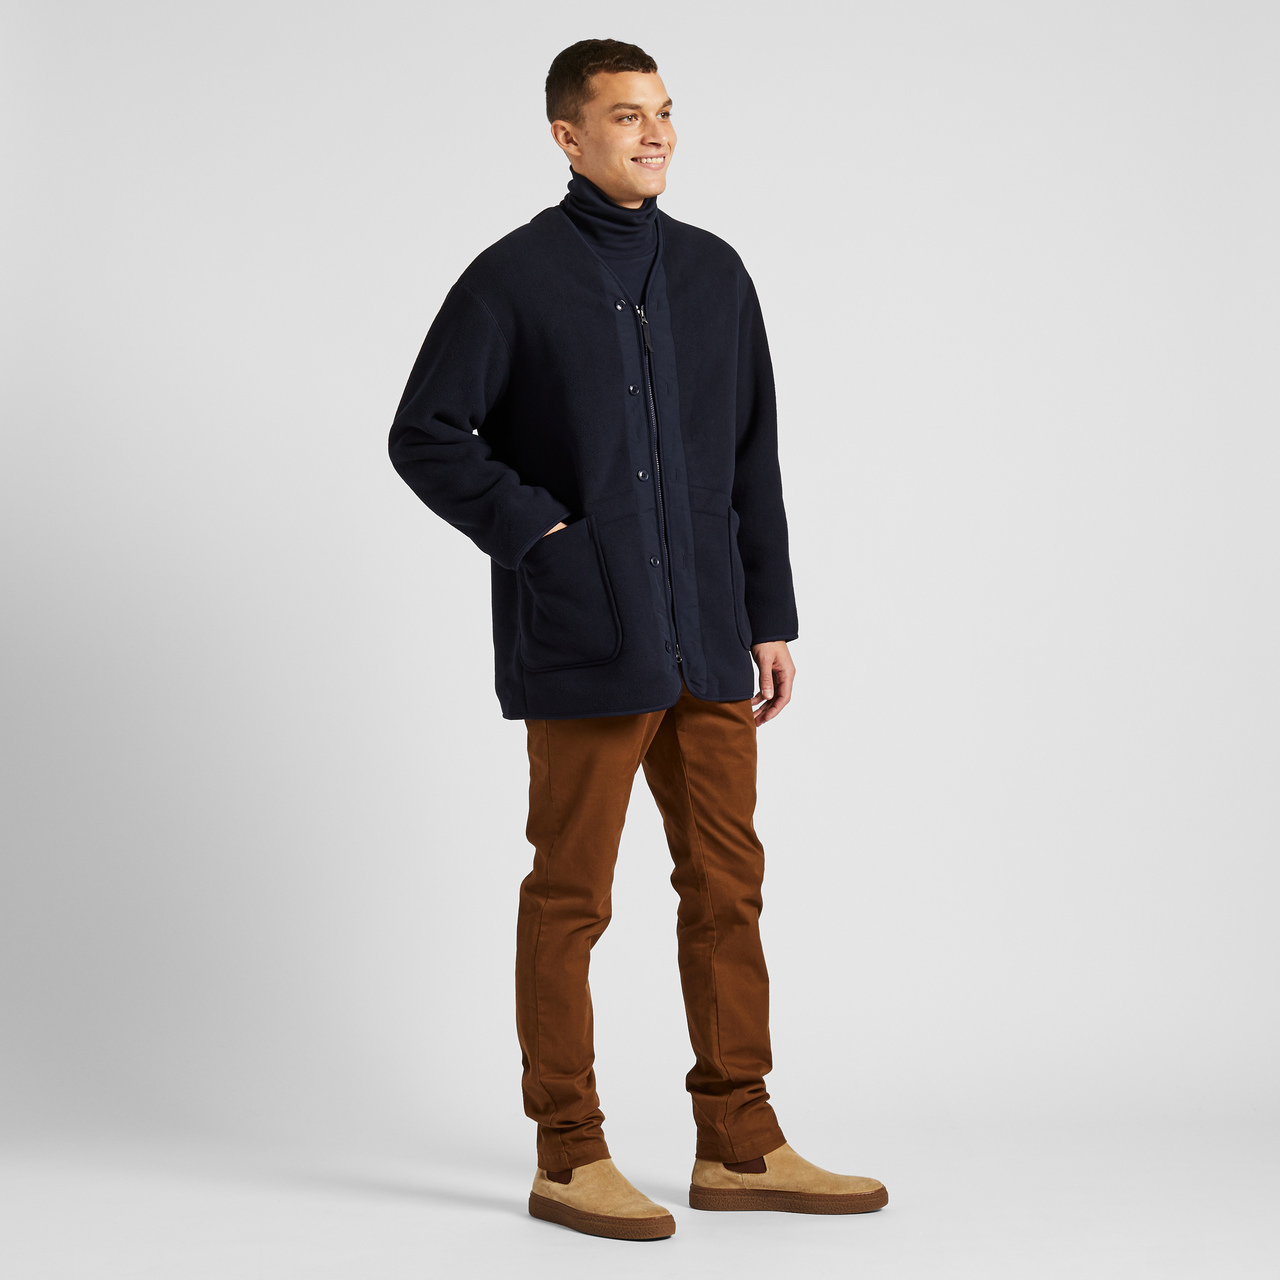 UNIQLO-Engineered Garments-Everyday Object-04